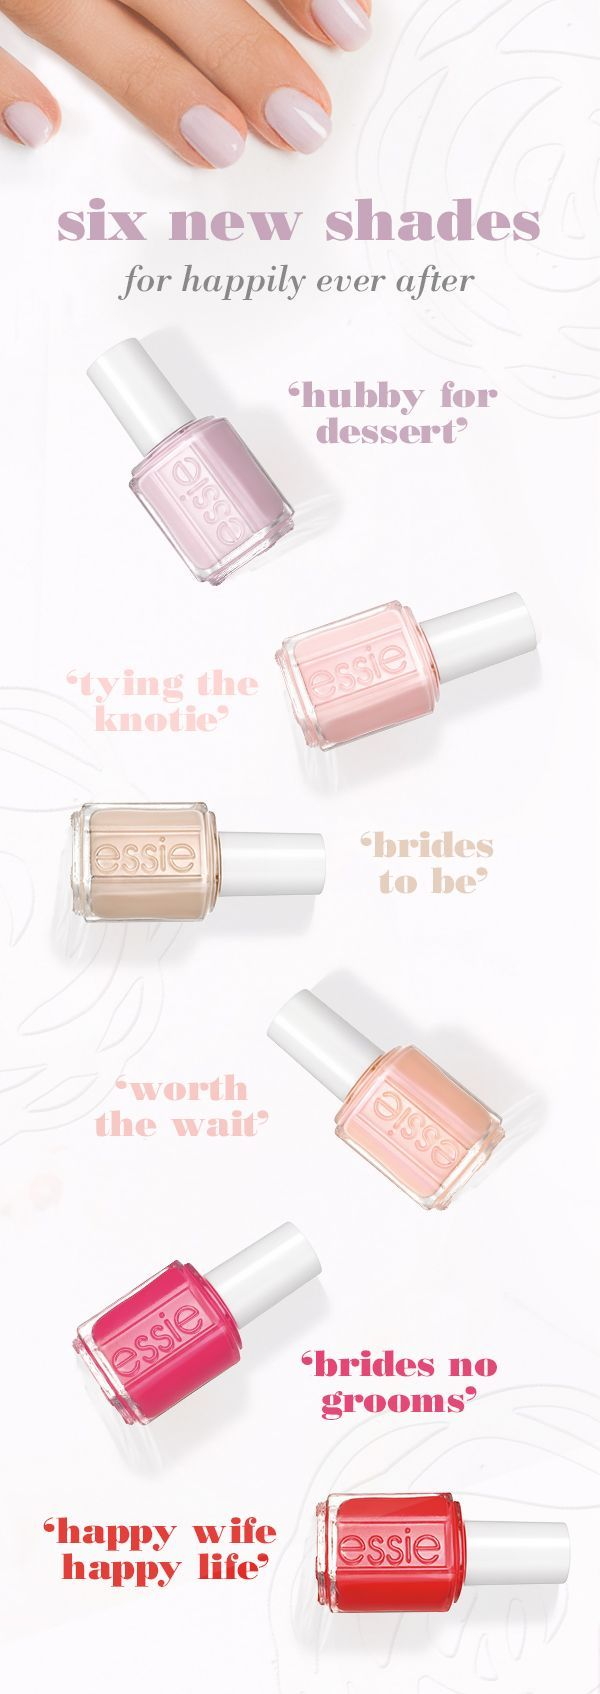 28 best essie says images on Pinterest | Nail nail, Nail polish and ...